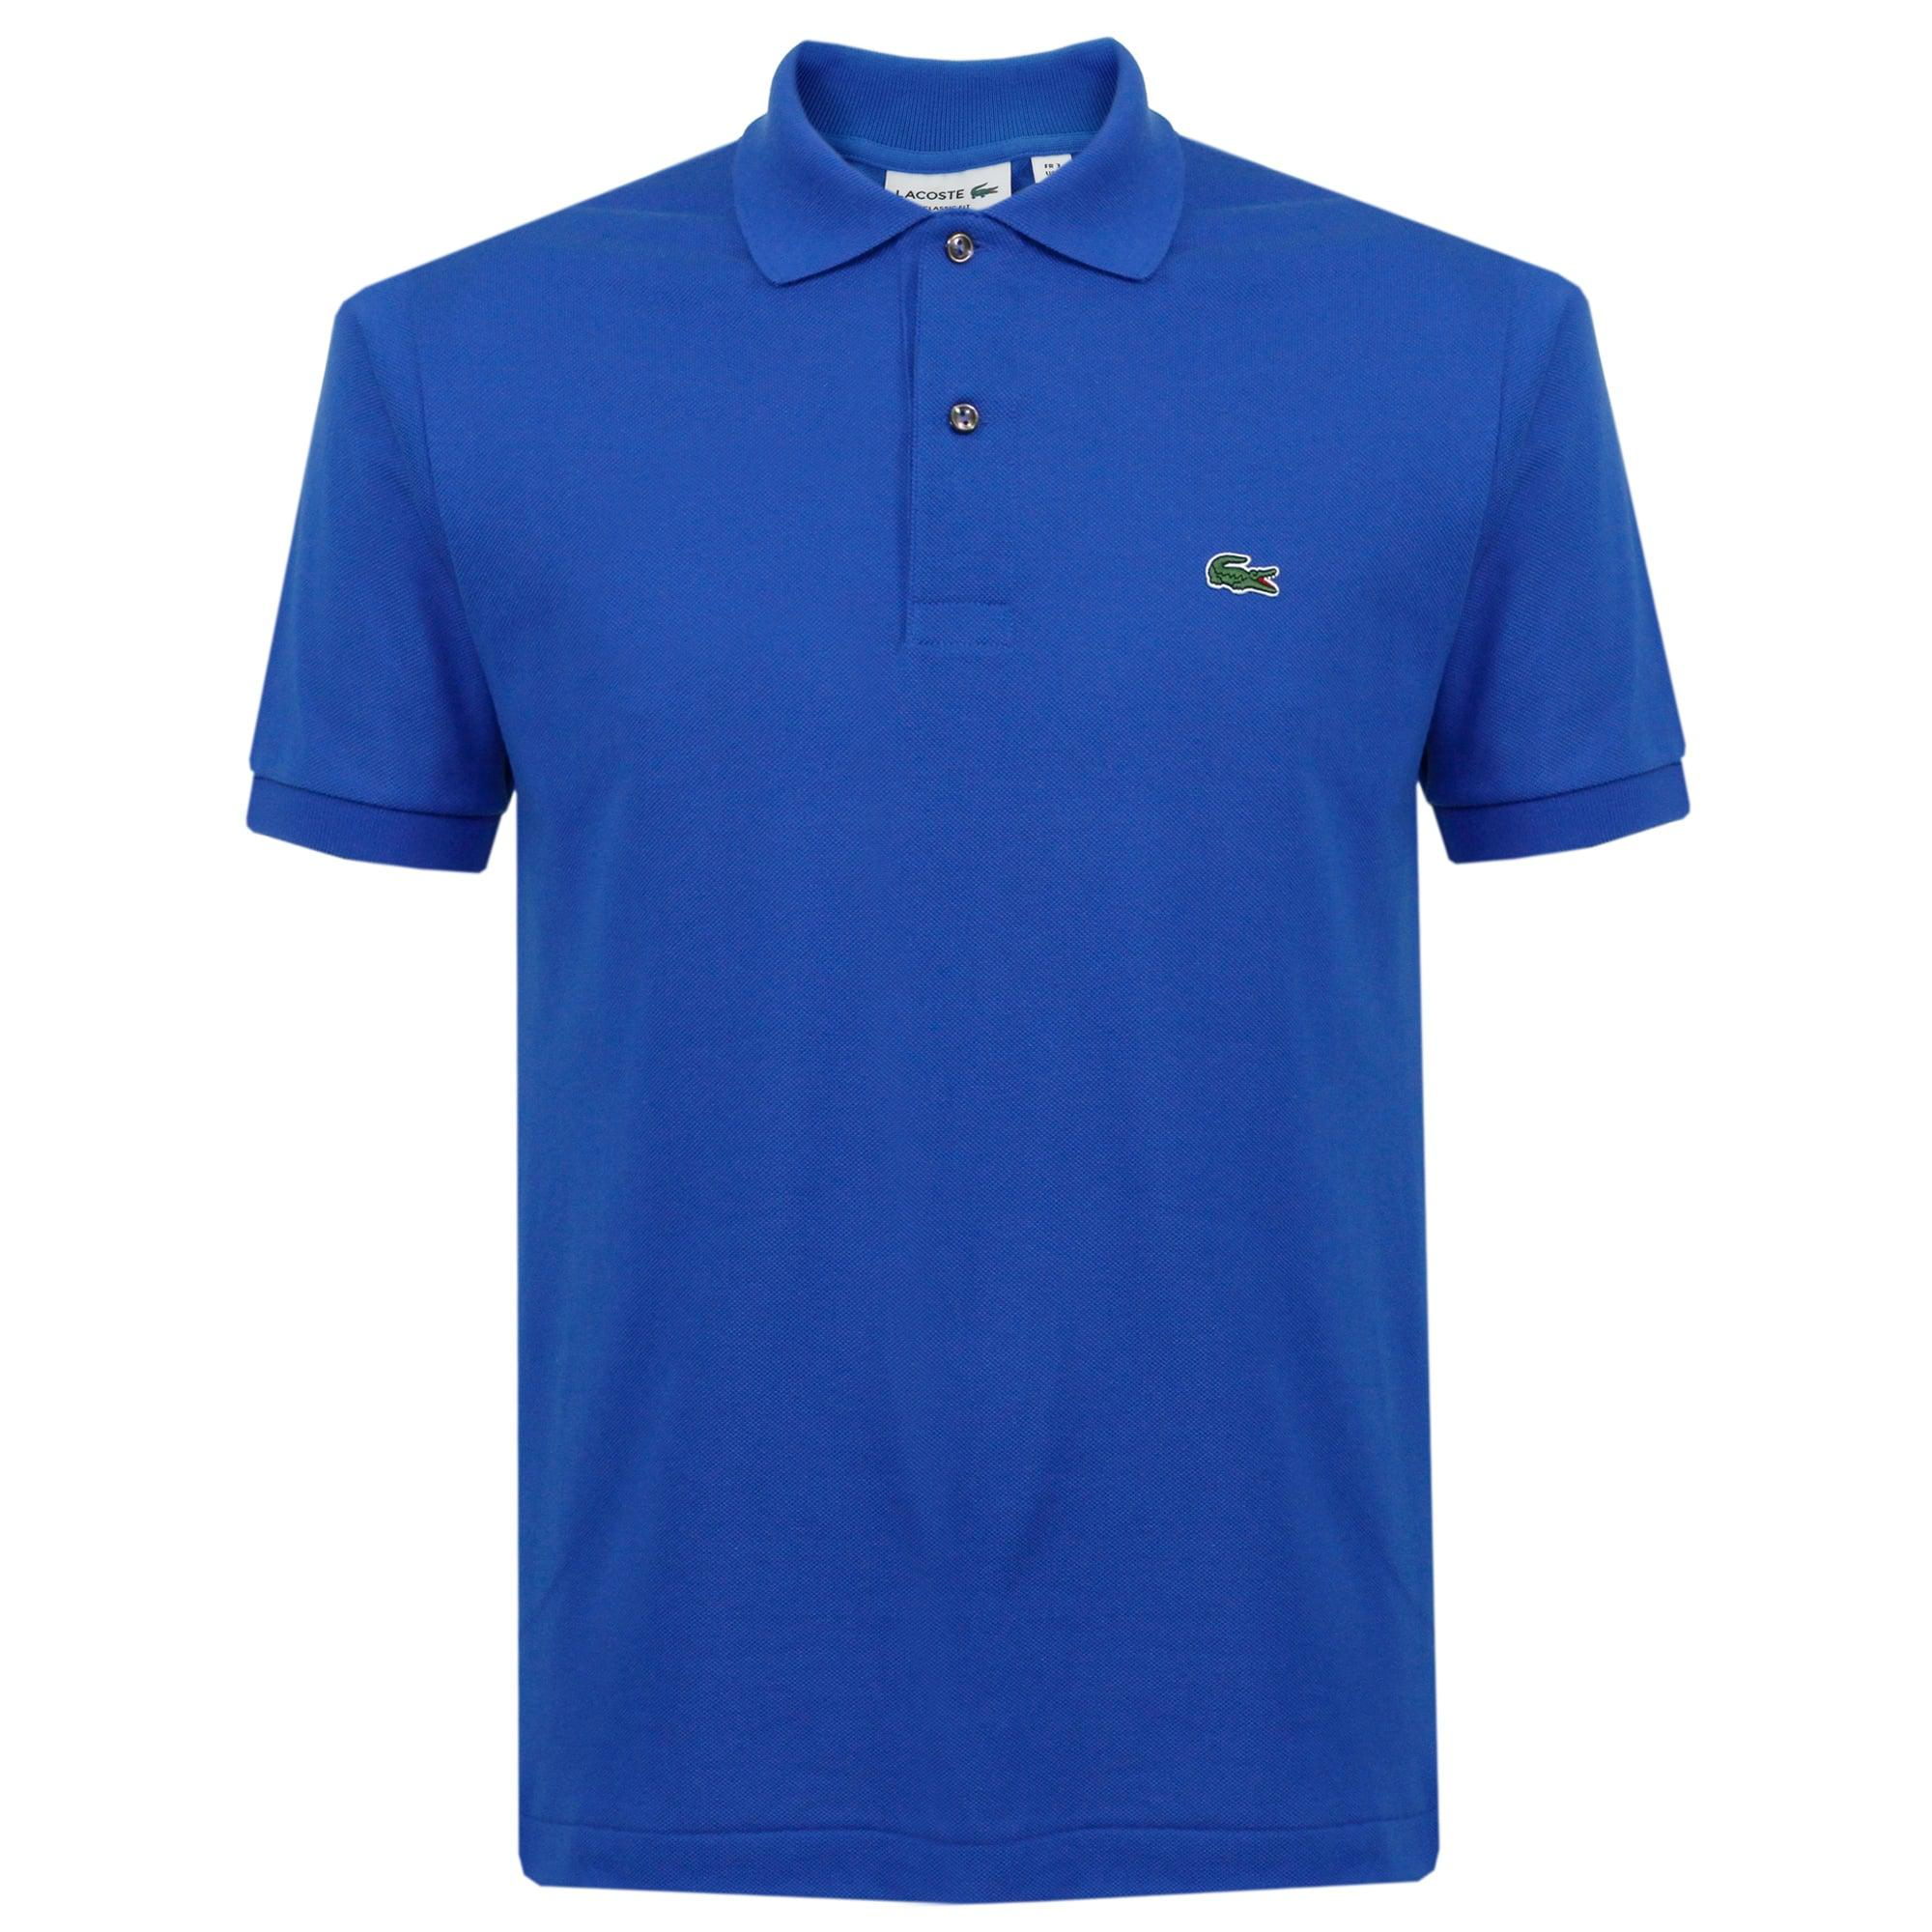 lacoste classic pique olympus blue polo shirt l1212 in blue for men lyst. Black Bedroom Furniture Sets. Home Design Ideas